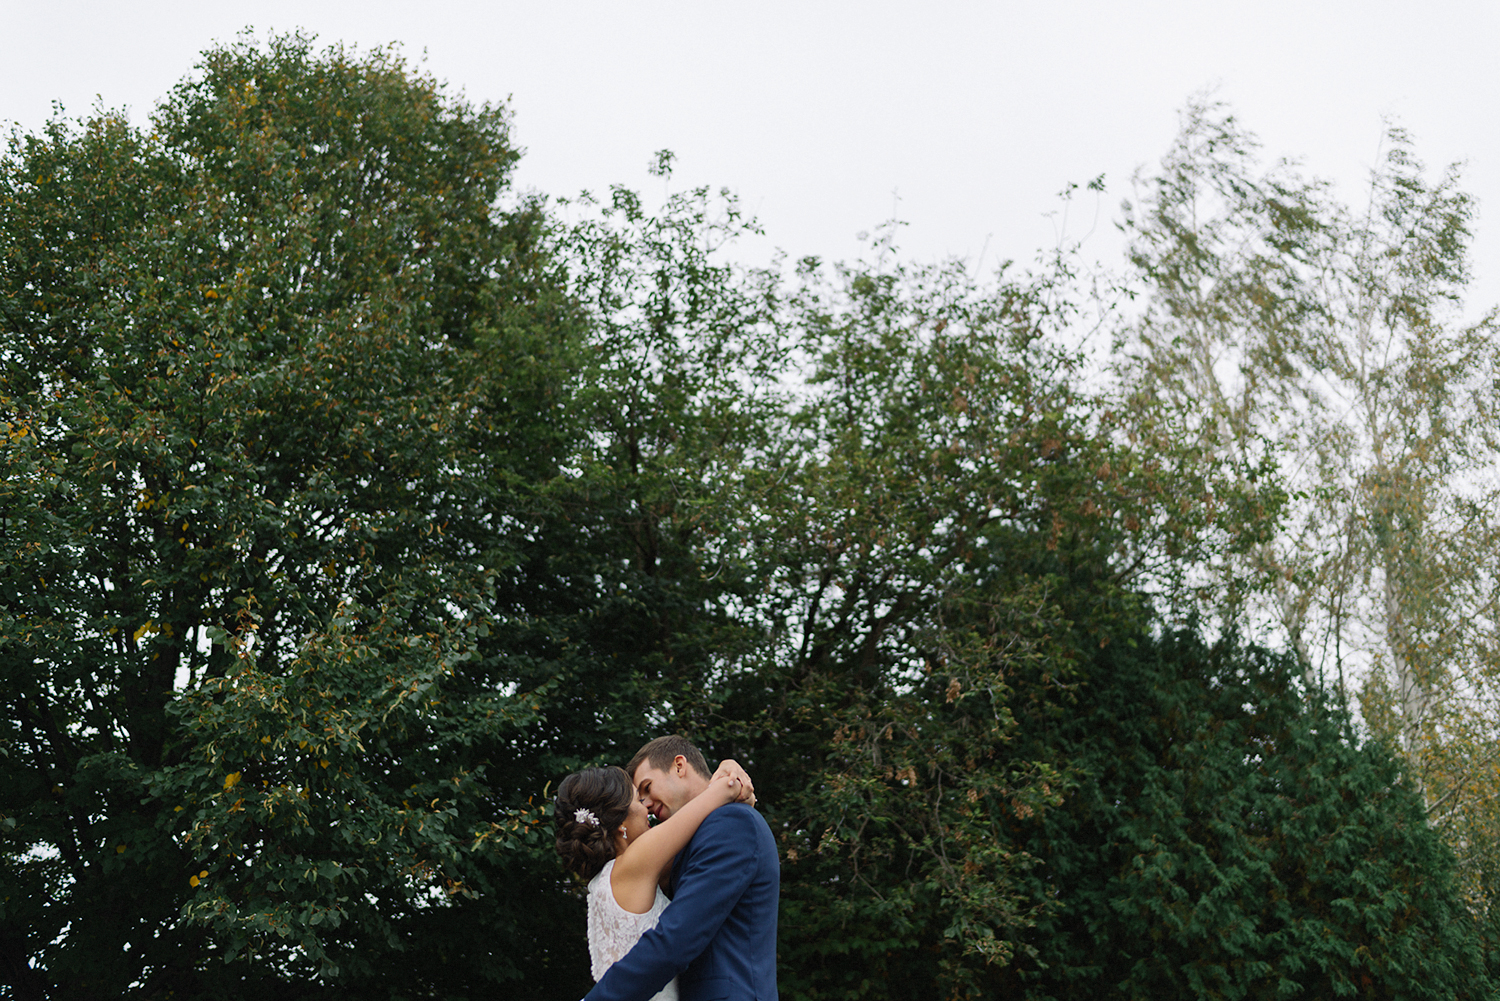 bride-and-groom-portraits-in-trees-epic-cinematic-toronto's-best-analog-documentary-wedding-photographers-candid-photography-london-ontario-wedding-inspiration.jpg